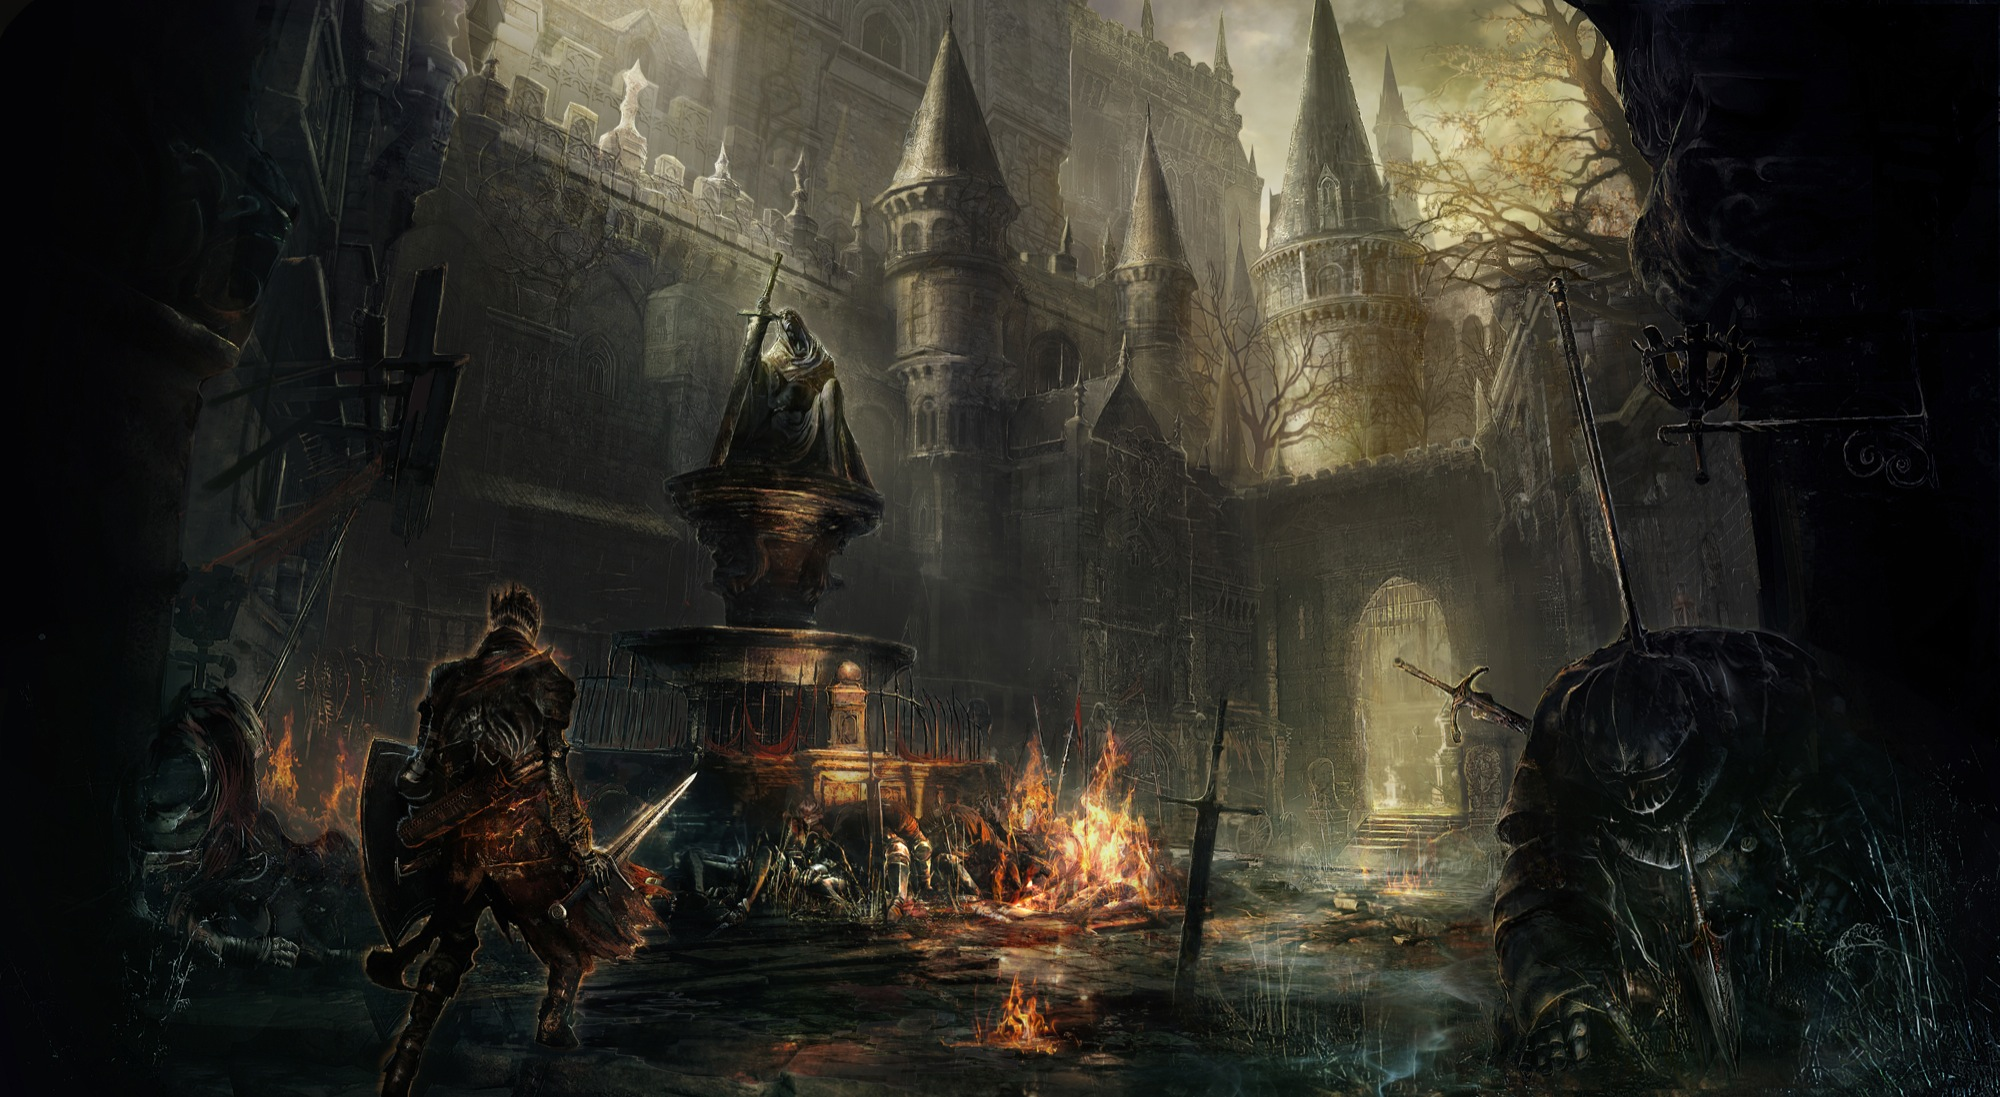 Dark Souls 3 is being developed by a different team to Bloodborne